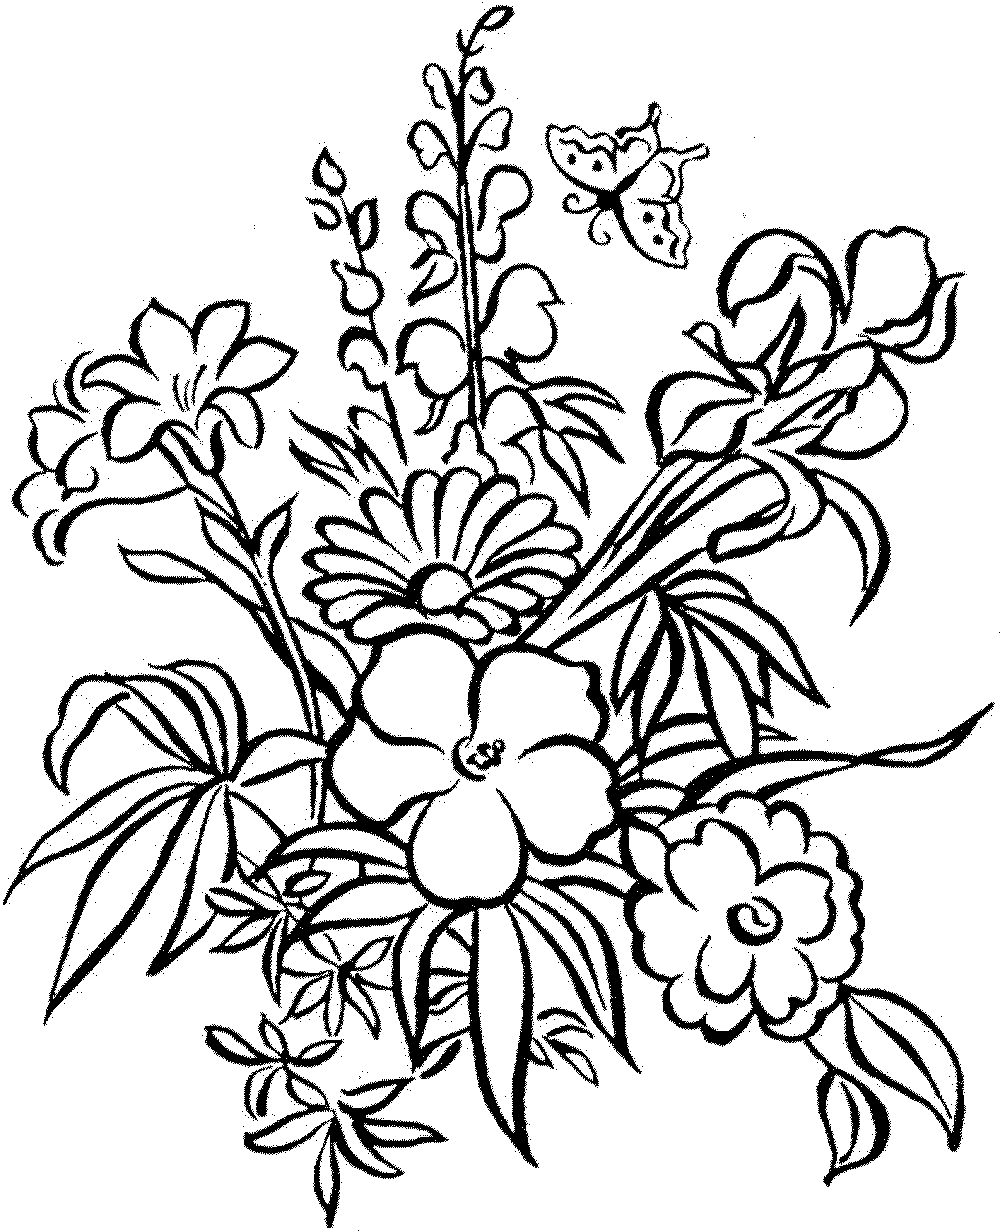 picture of flowers to colour detailed flower coloring pages to download and print for free colour picture flowers of to